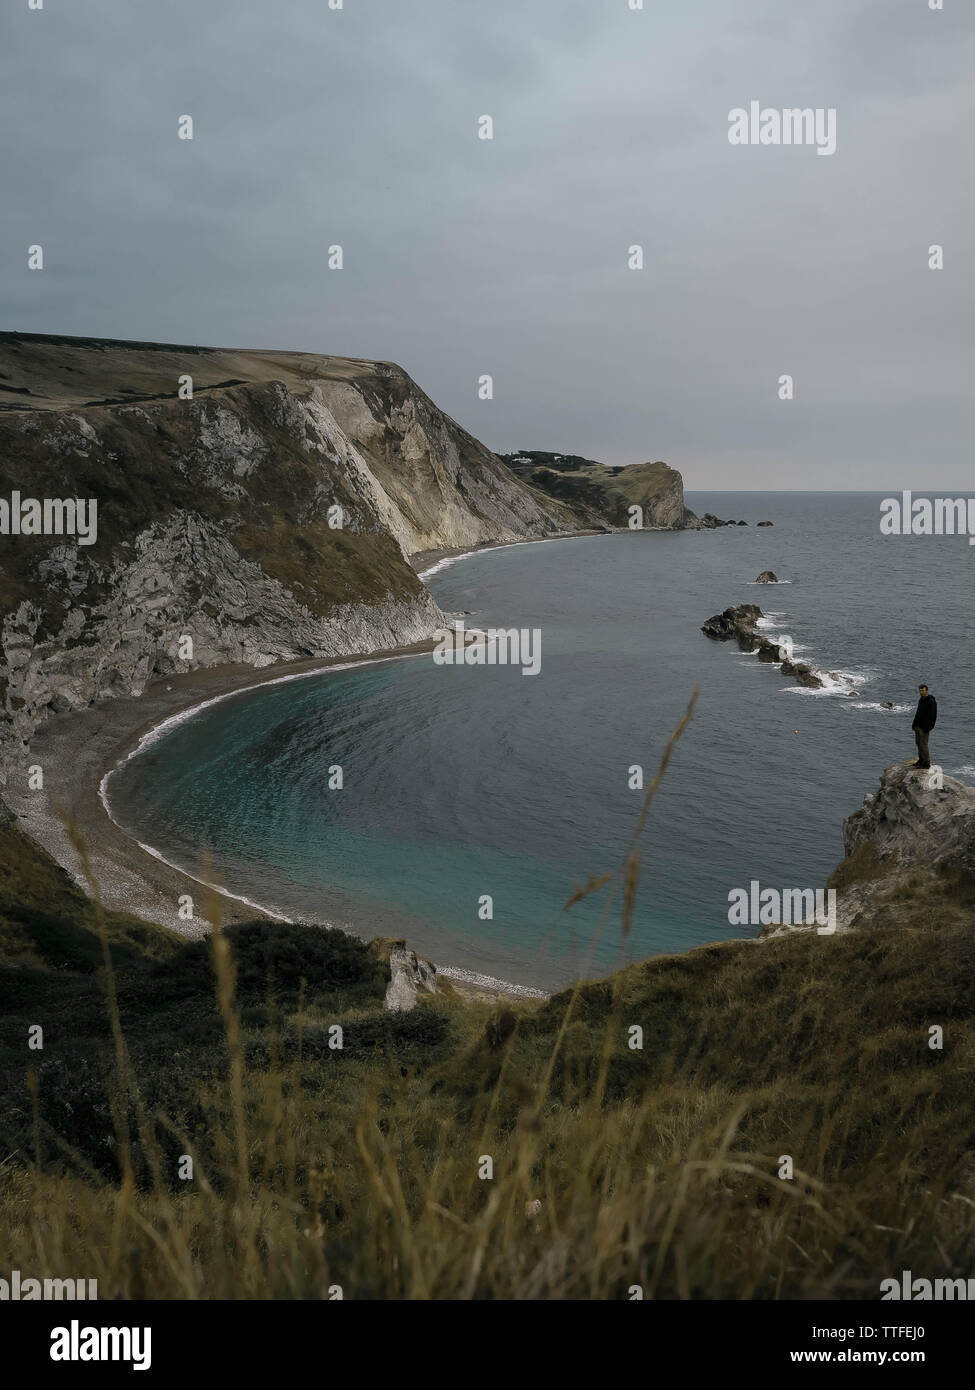 A man stands on a rock on the background of the bay Durdle Door - Stock Image